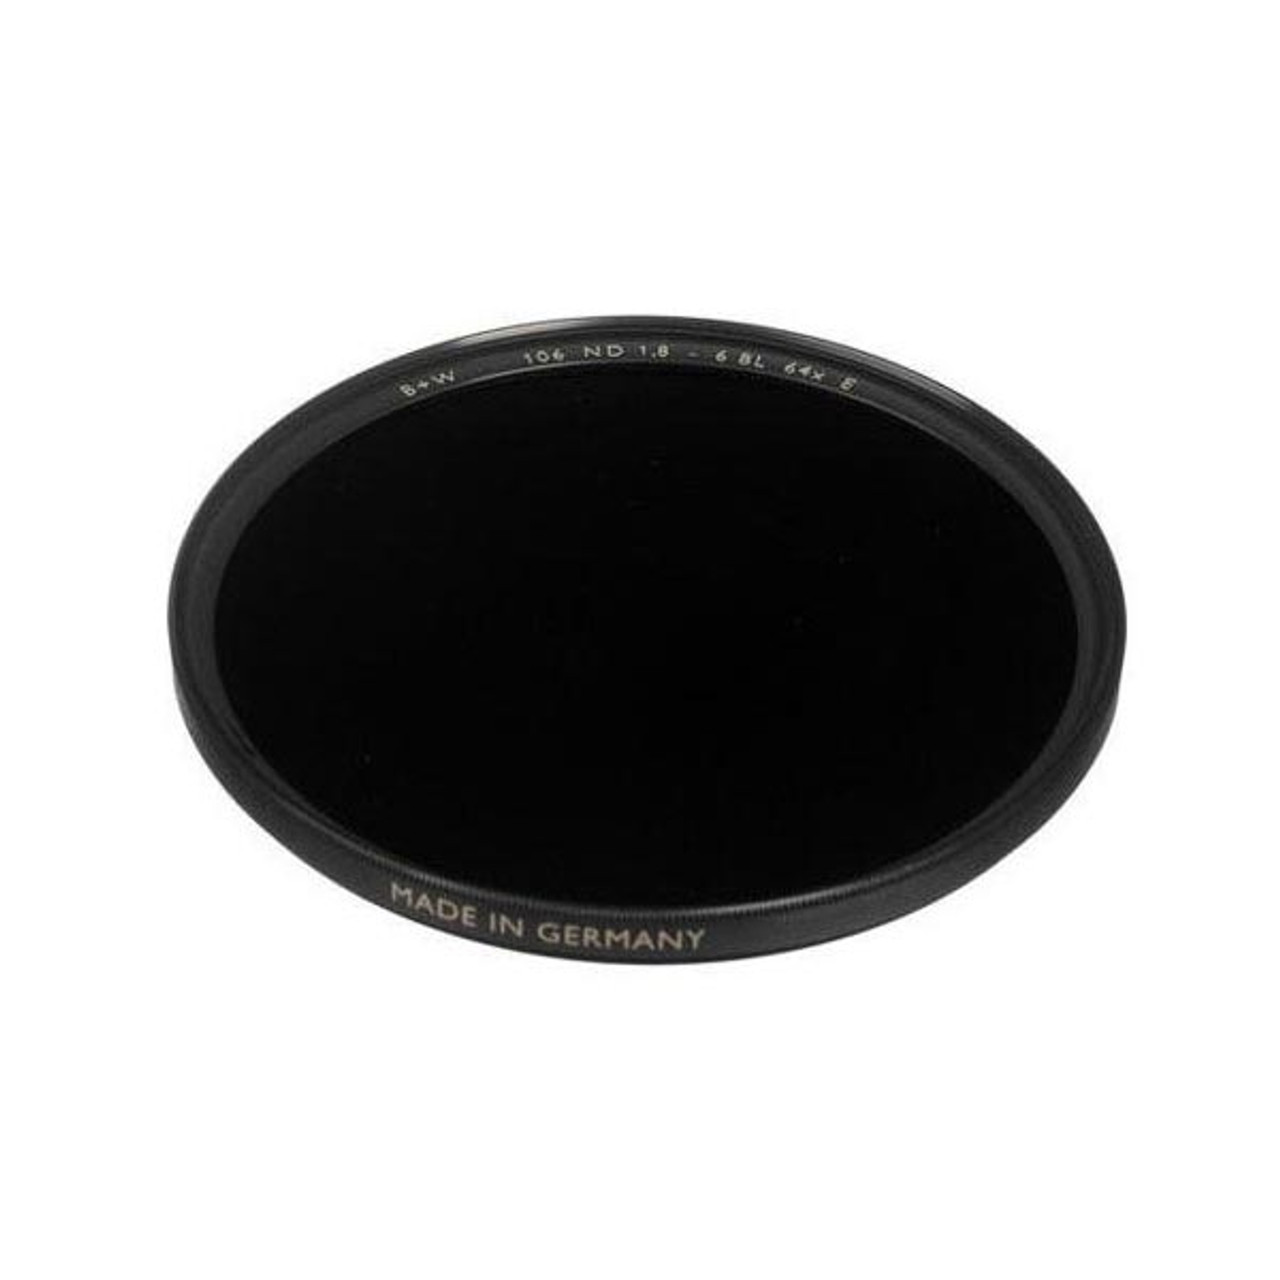 B+W 82mm ND 1.8 - 64x (106) Filter 6-stop